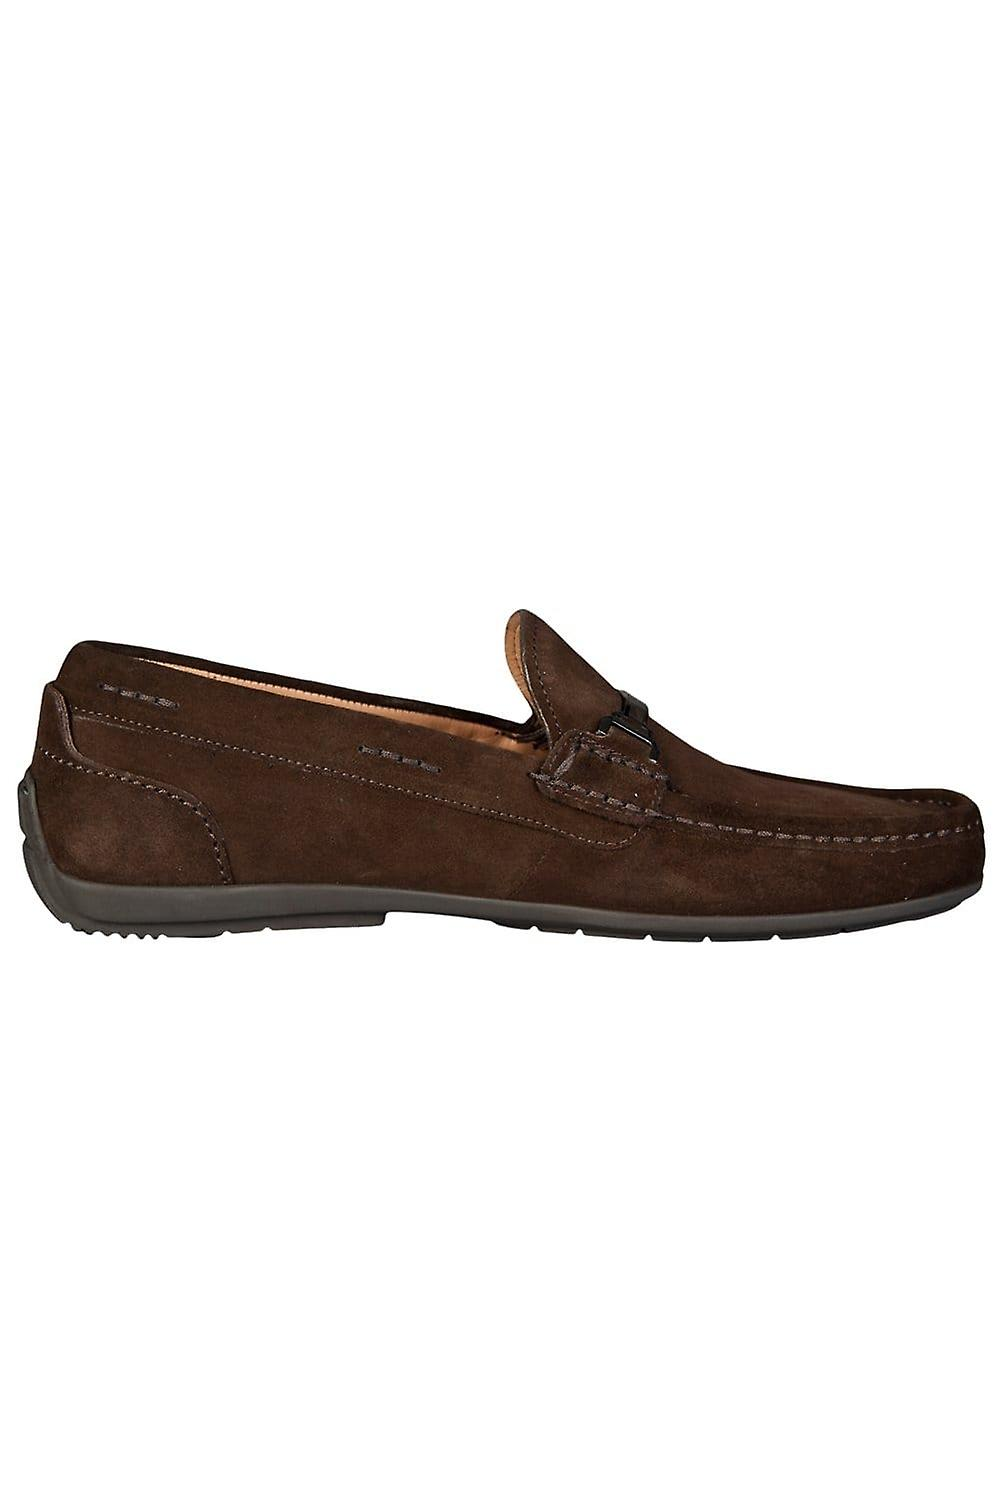 BOSS HUGO BOSS BLACK Driving Shoes In Brown And Navy Blue FLARRO 50285482